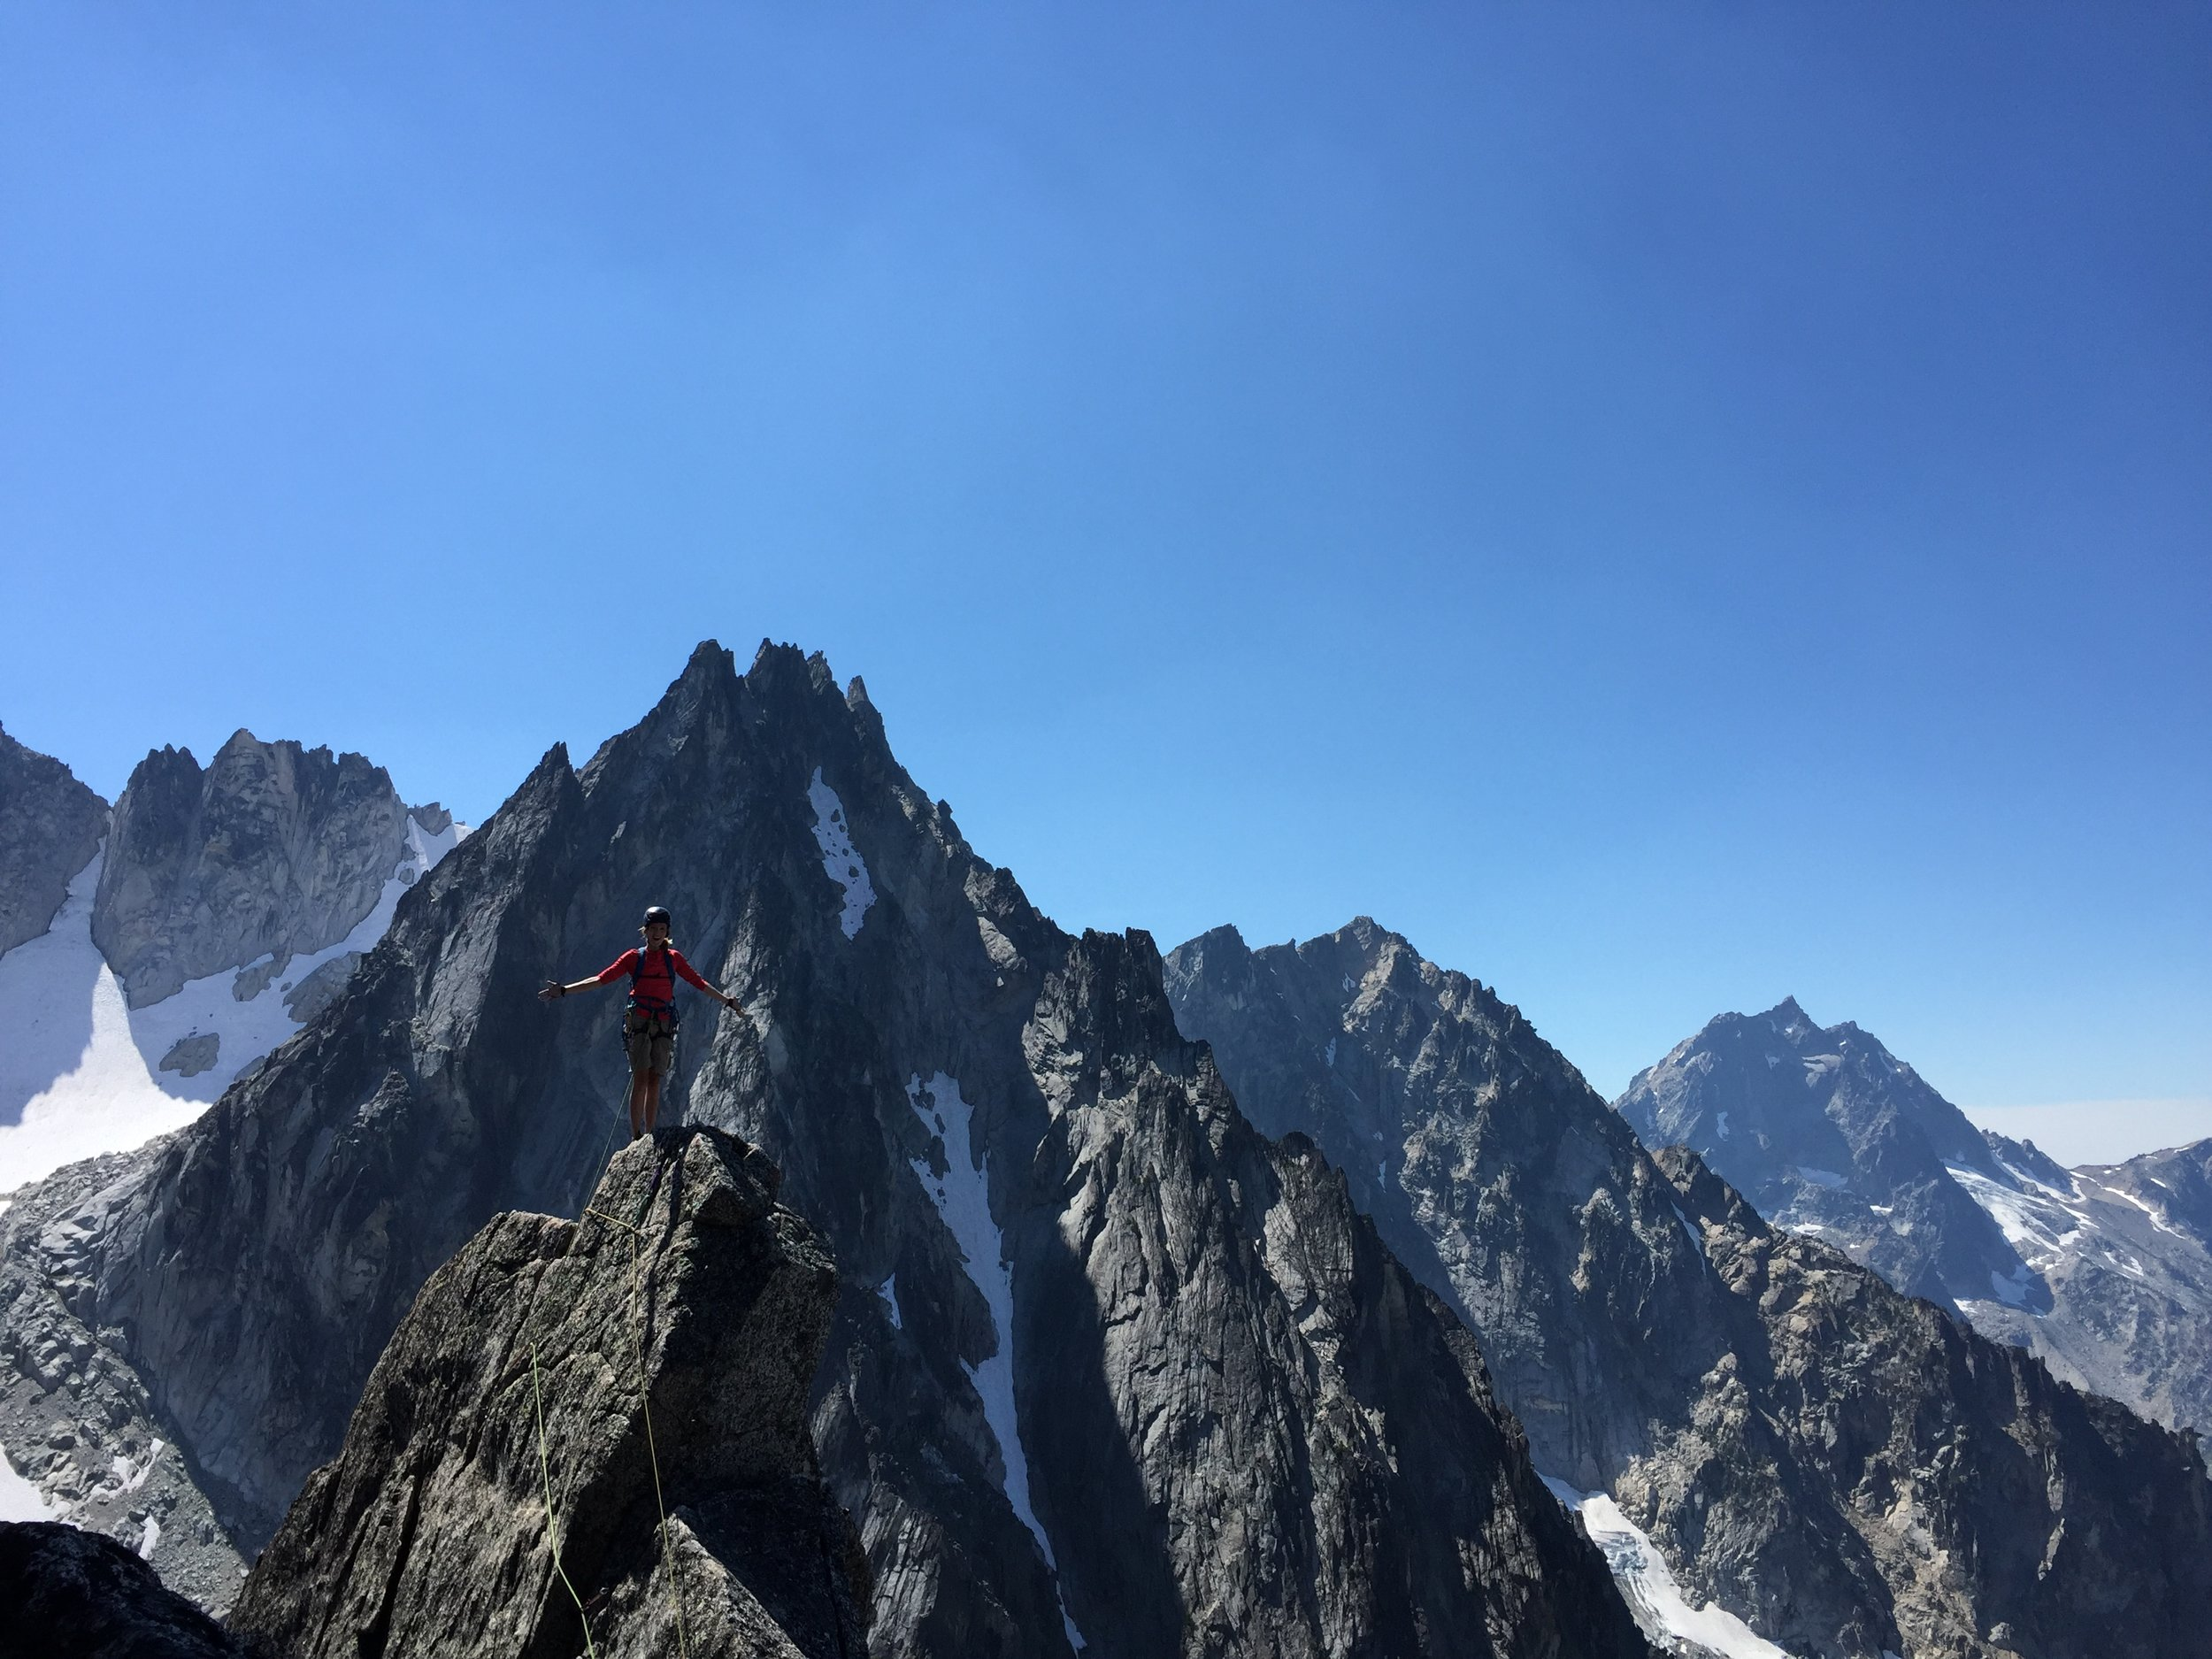 Zac (w/ his better half) alpine climbing in the Enchantments